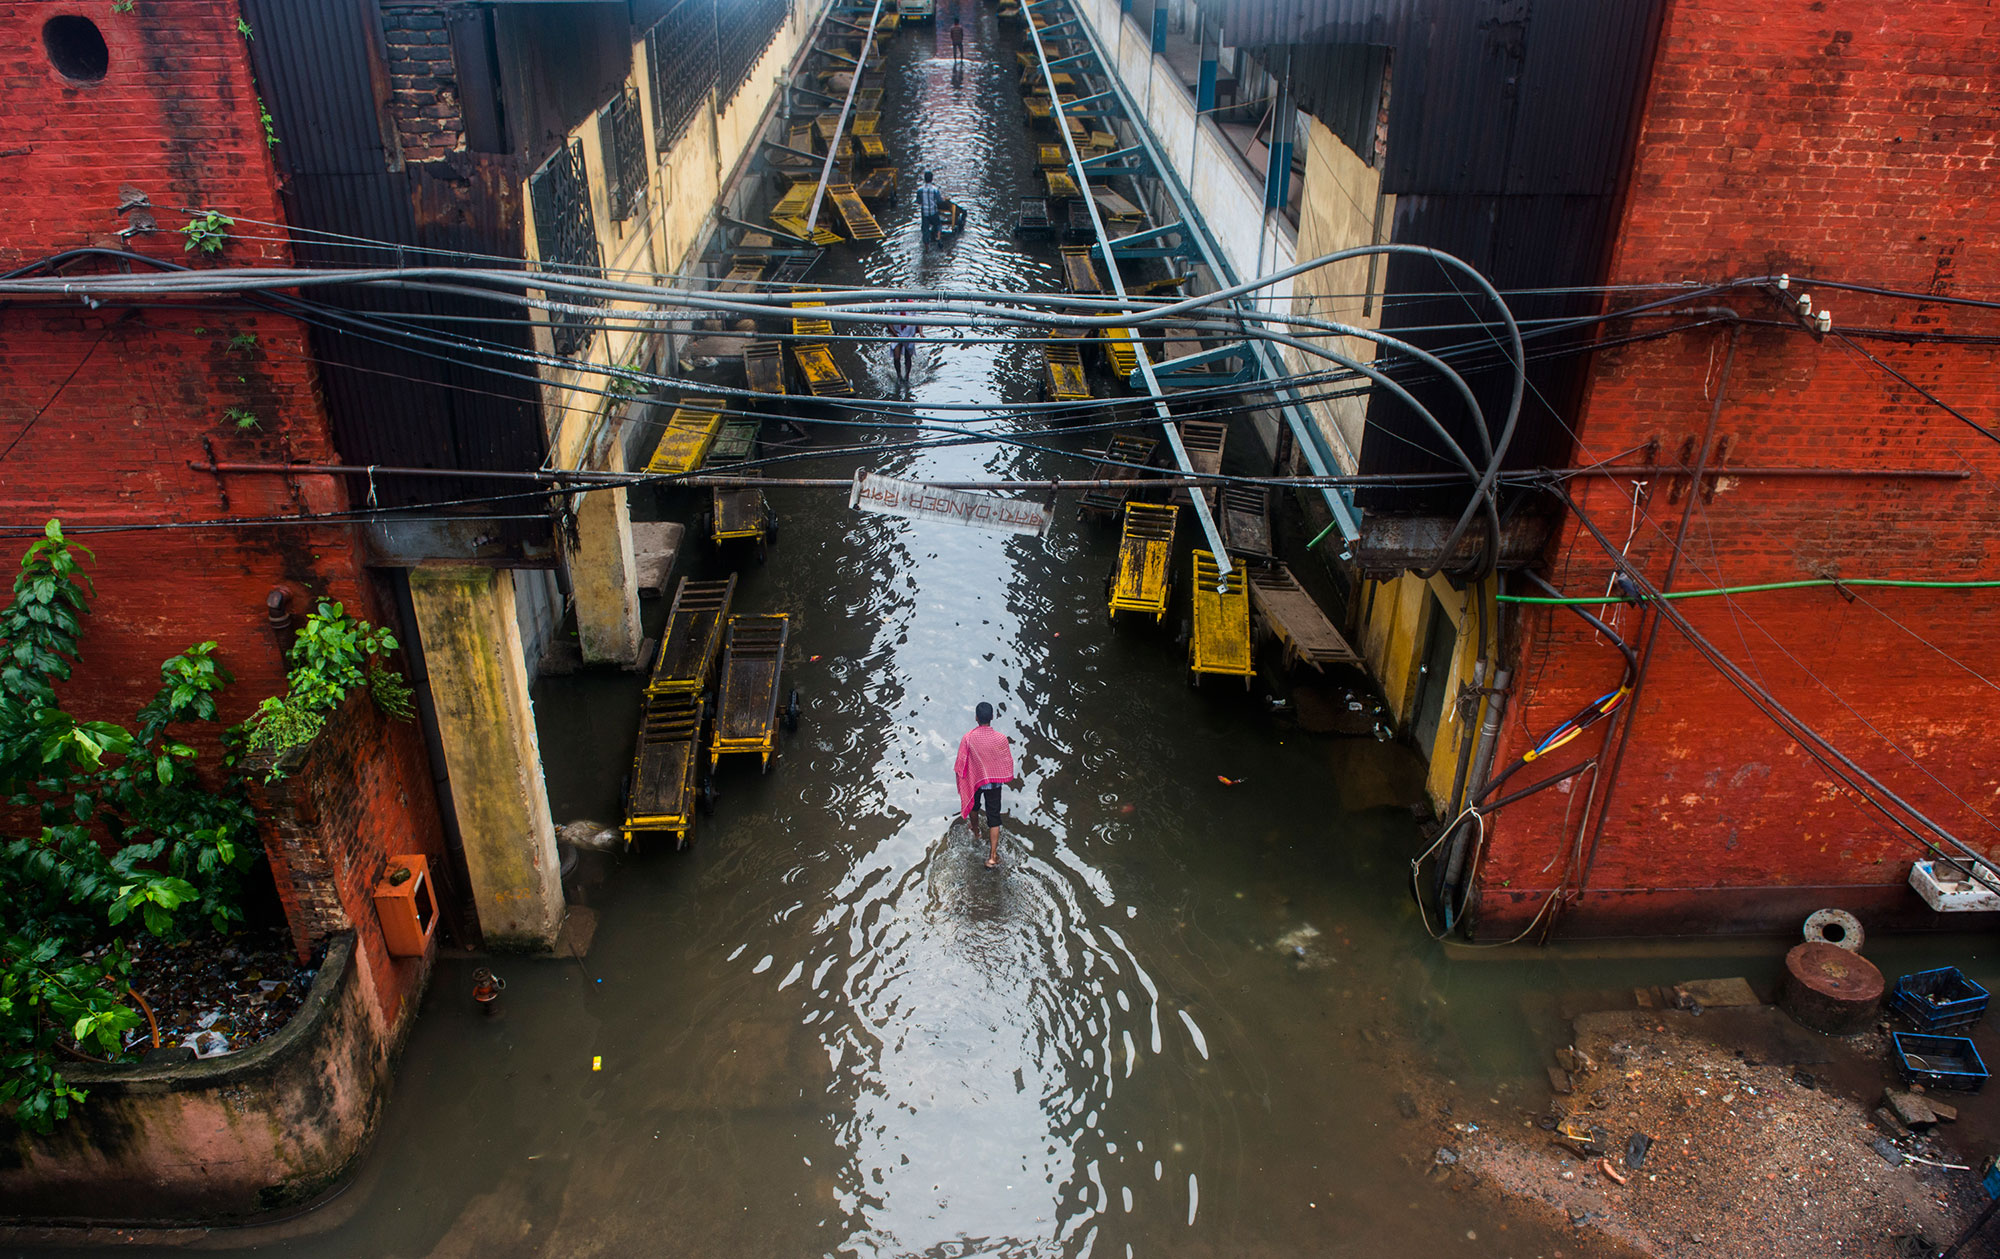 Heavy rains from a cyclone, flood the streets of Calcutta, a city quite used to flooding due to its proximity to the Ganges River.